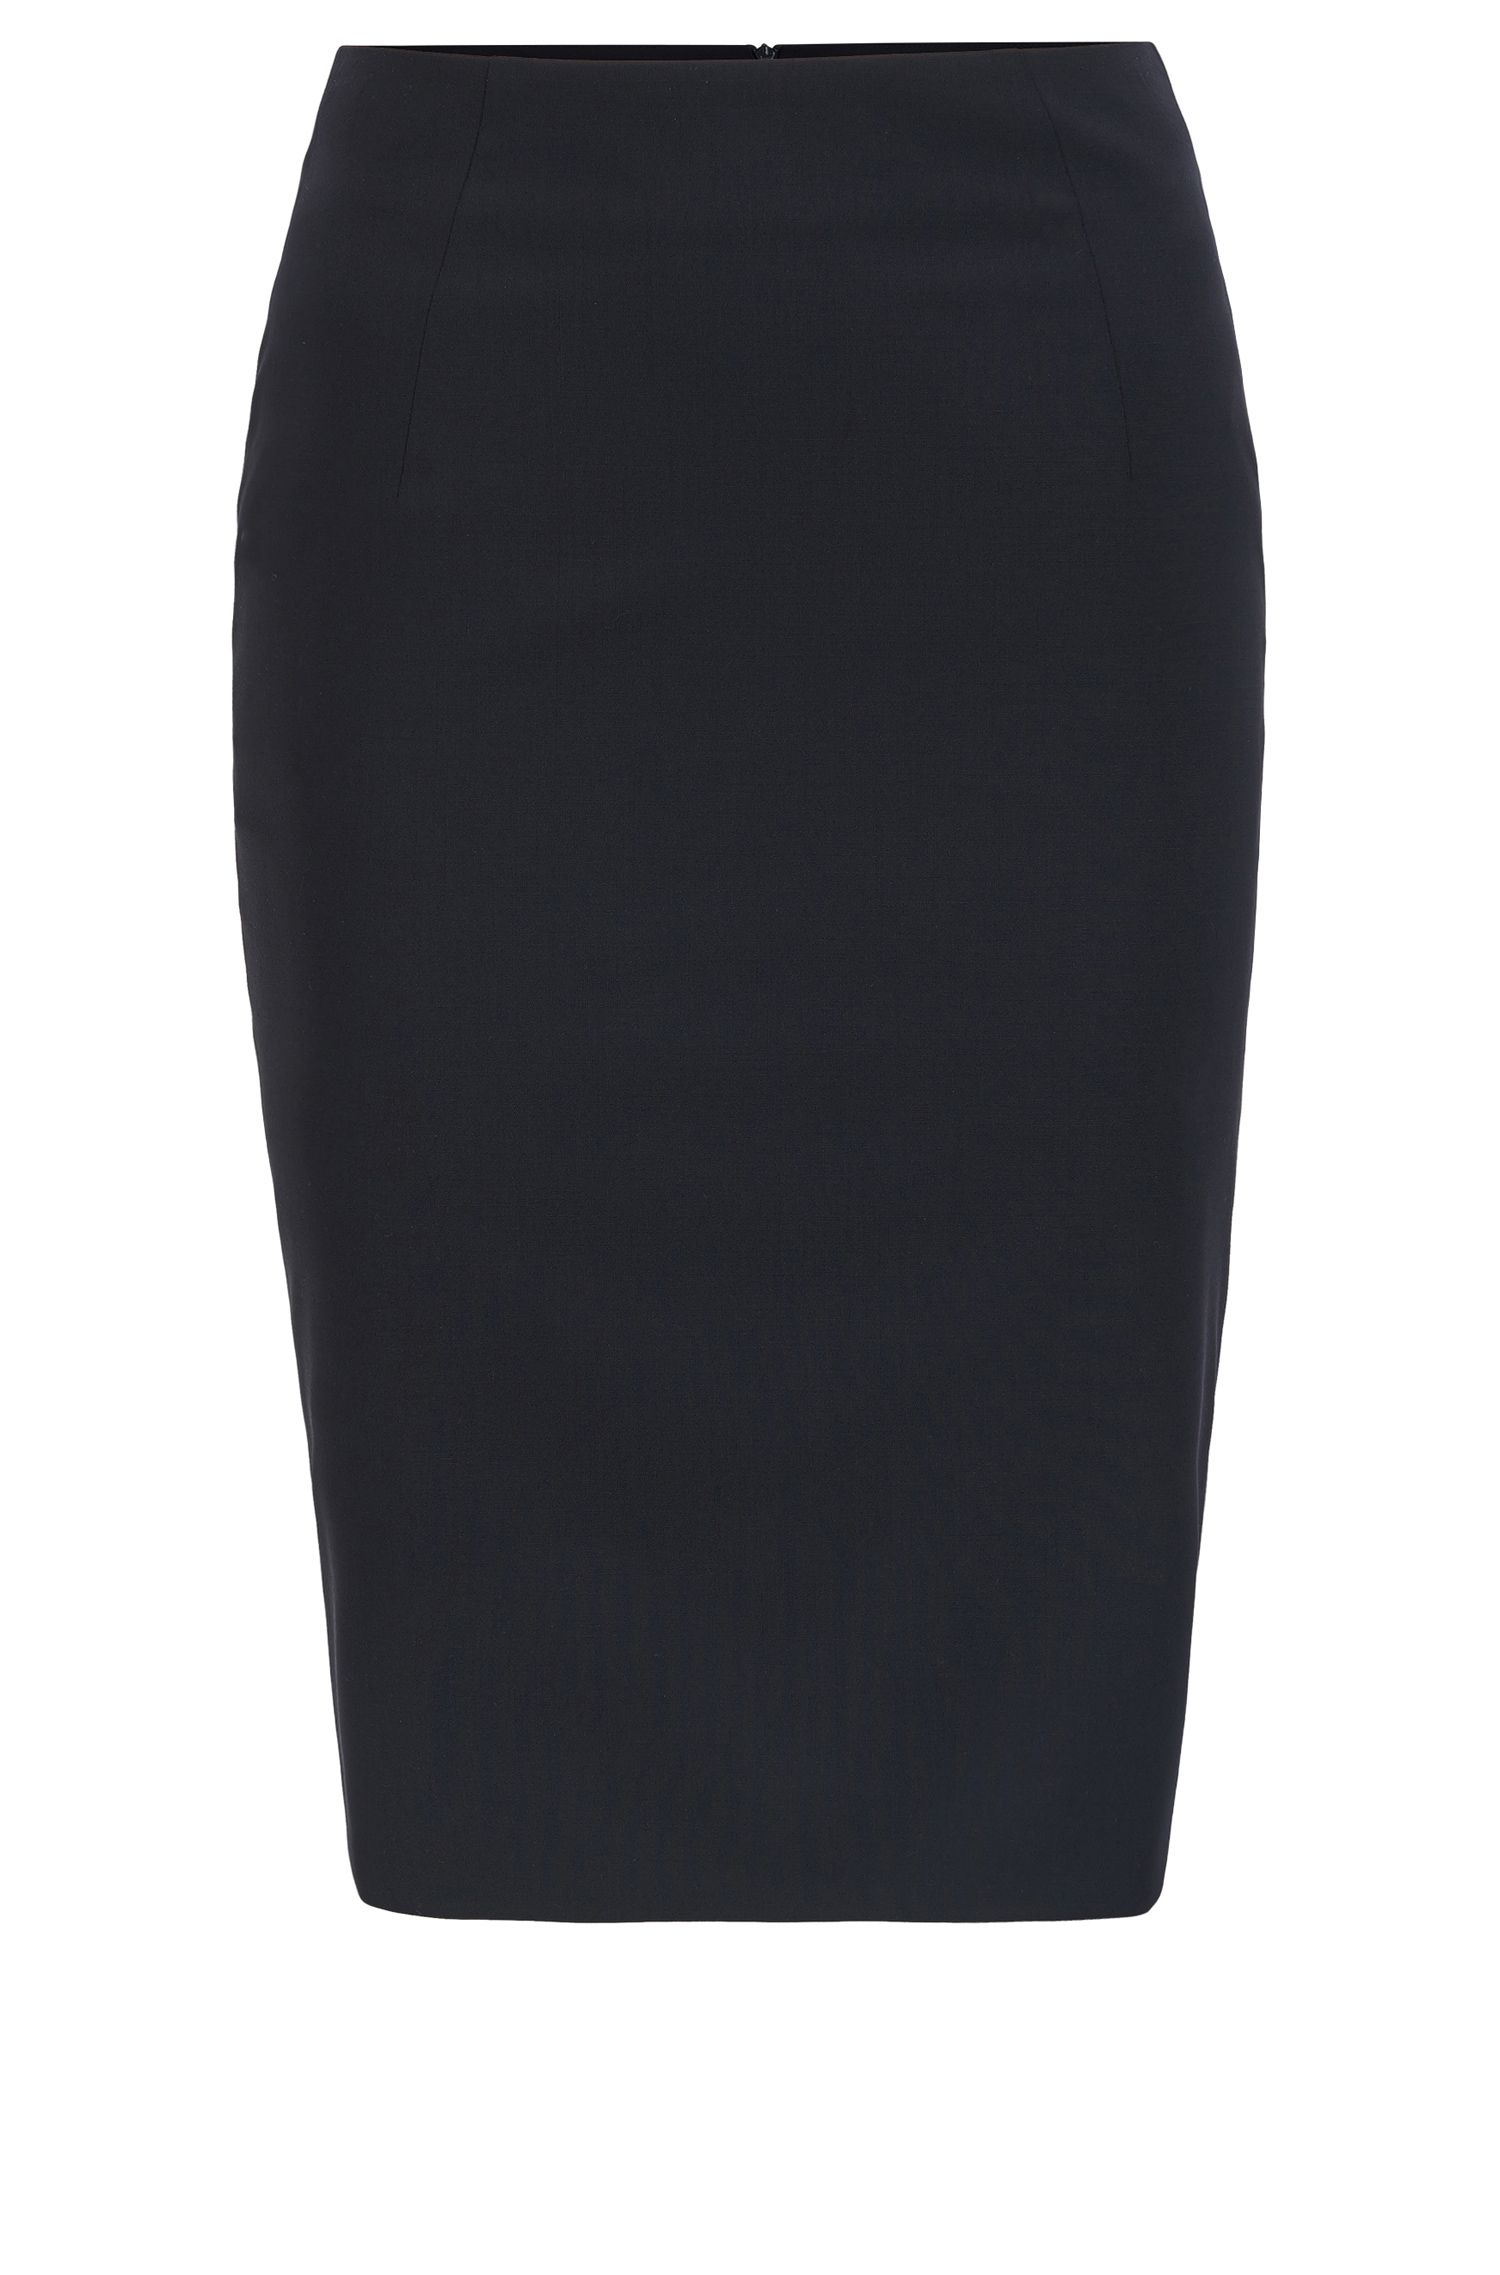 Pencil skirt in stretch virgin wool